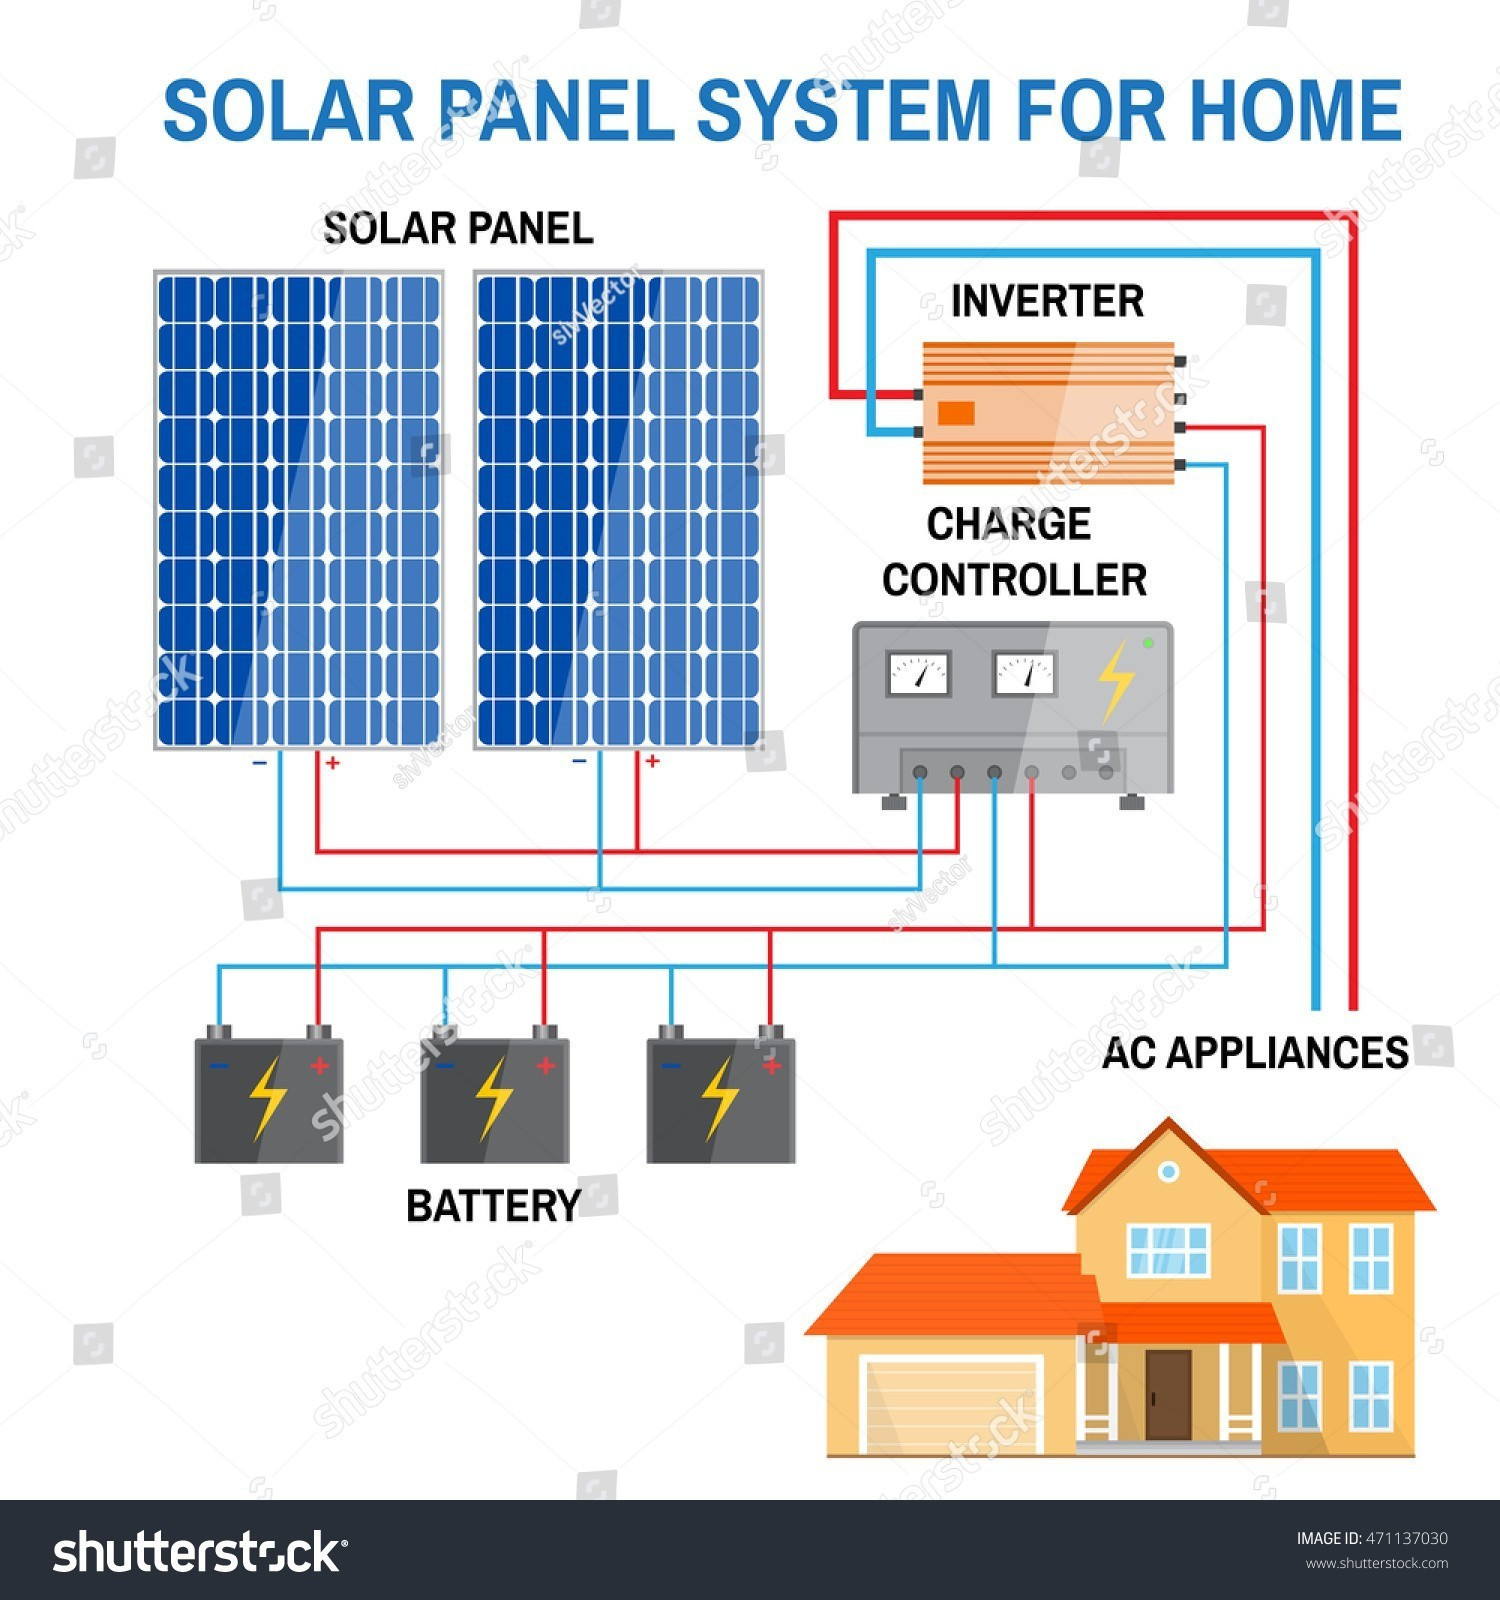 rv solar panel wiring diagram - wiring diagram solar panels inverter best wiring  diagram for f